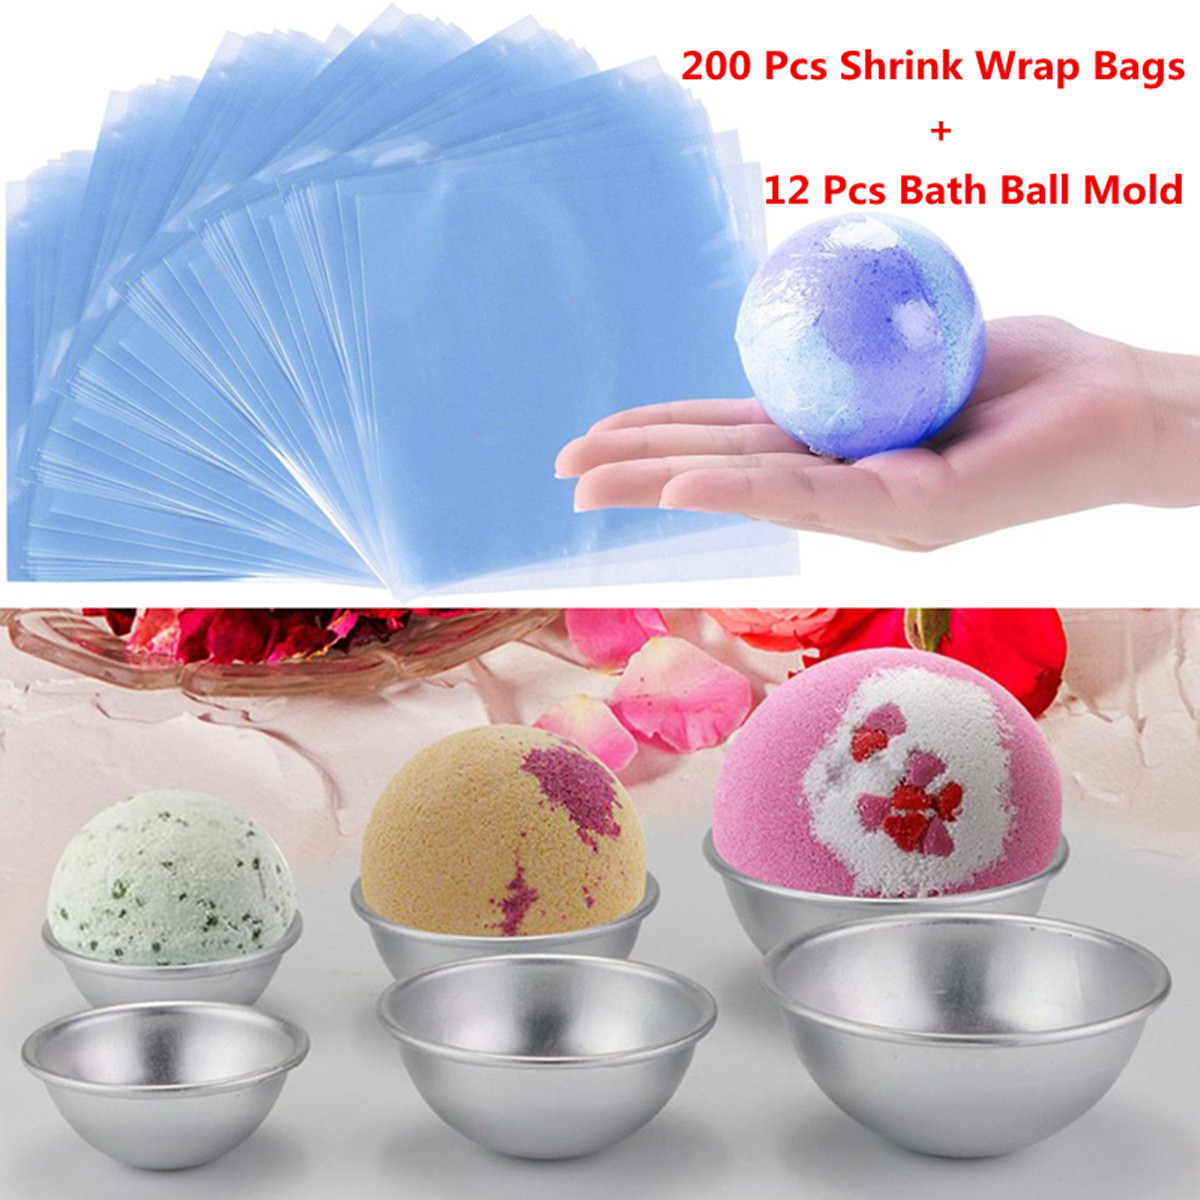 3 Size DIY Metal Bath Bomb Molds + 200 Pcs Heat Shrink Bags Soap 3D Ball Sphere Shaped DIY Bathing Tool Accessories 12 Pcs